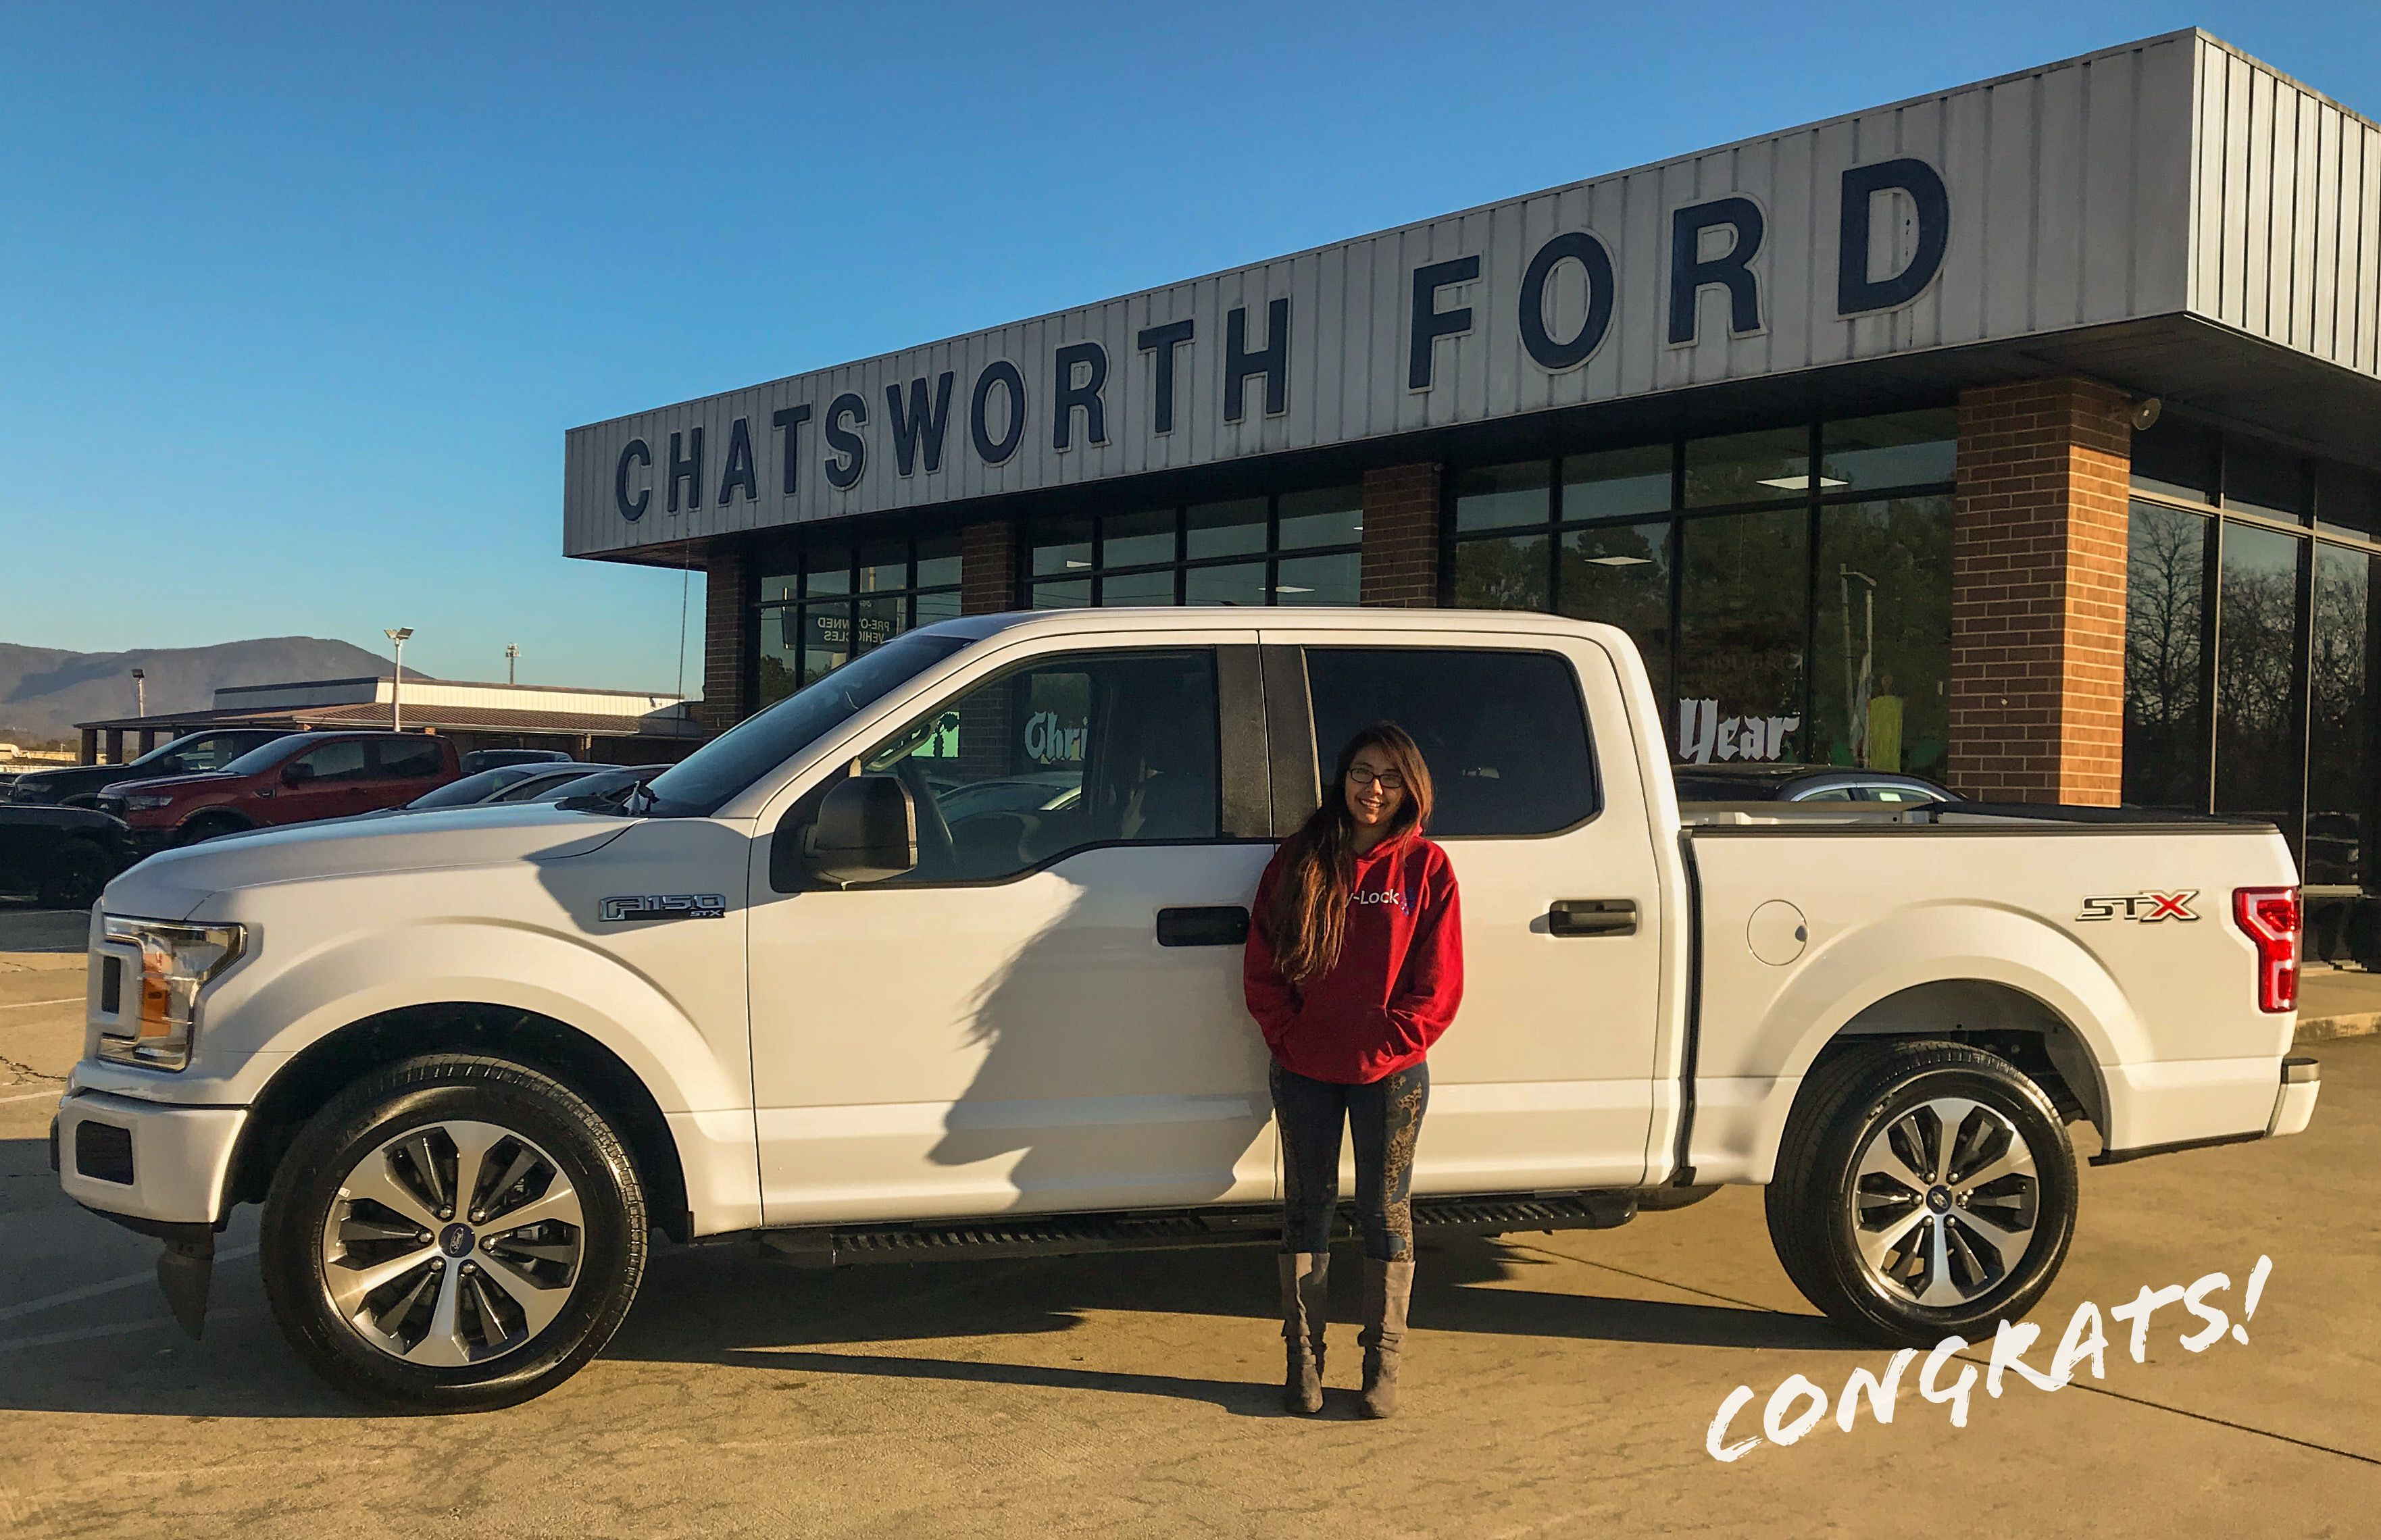 congratulations merari ramos morales of chatsworth ga on your new 2019 f 150 stx sold by jared langham and cory sims w chatsworth ford news new and used cars pinterest